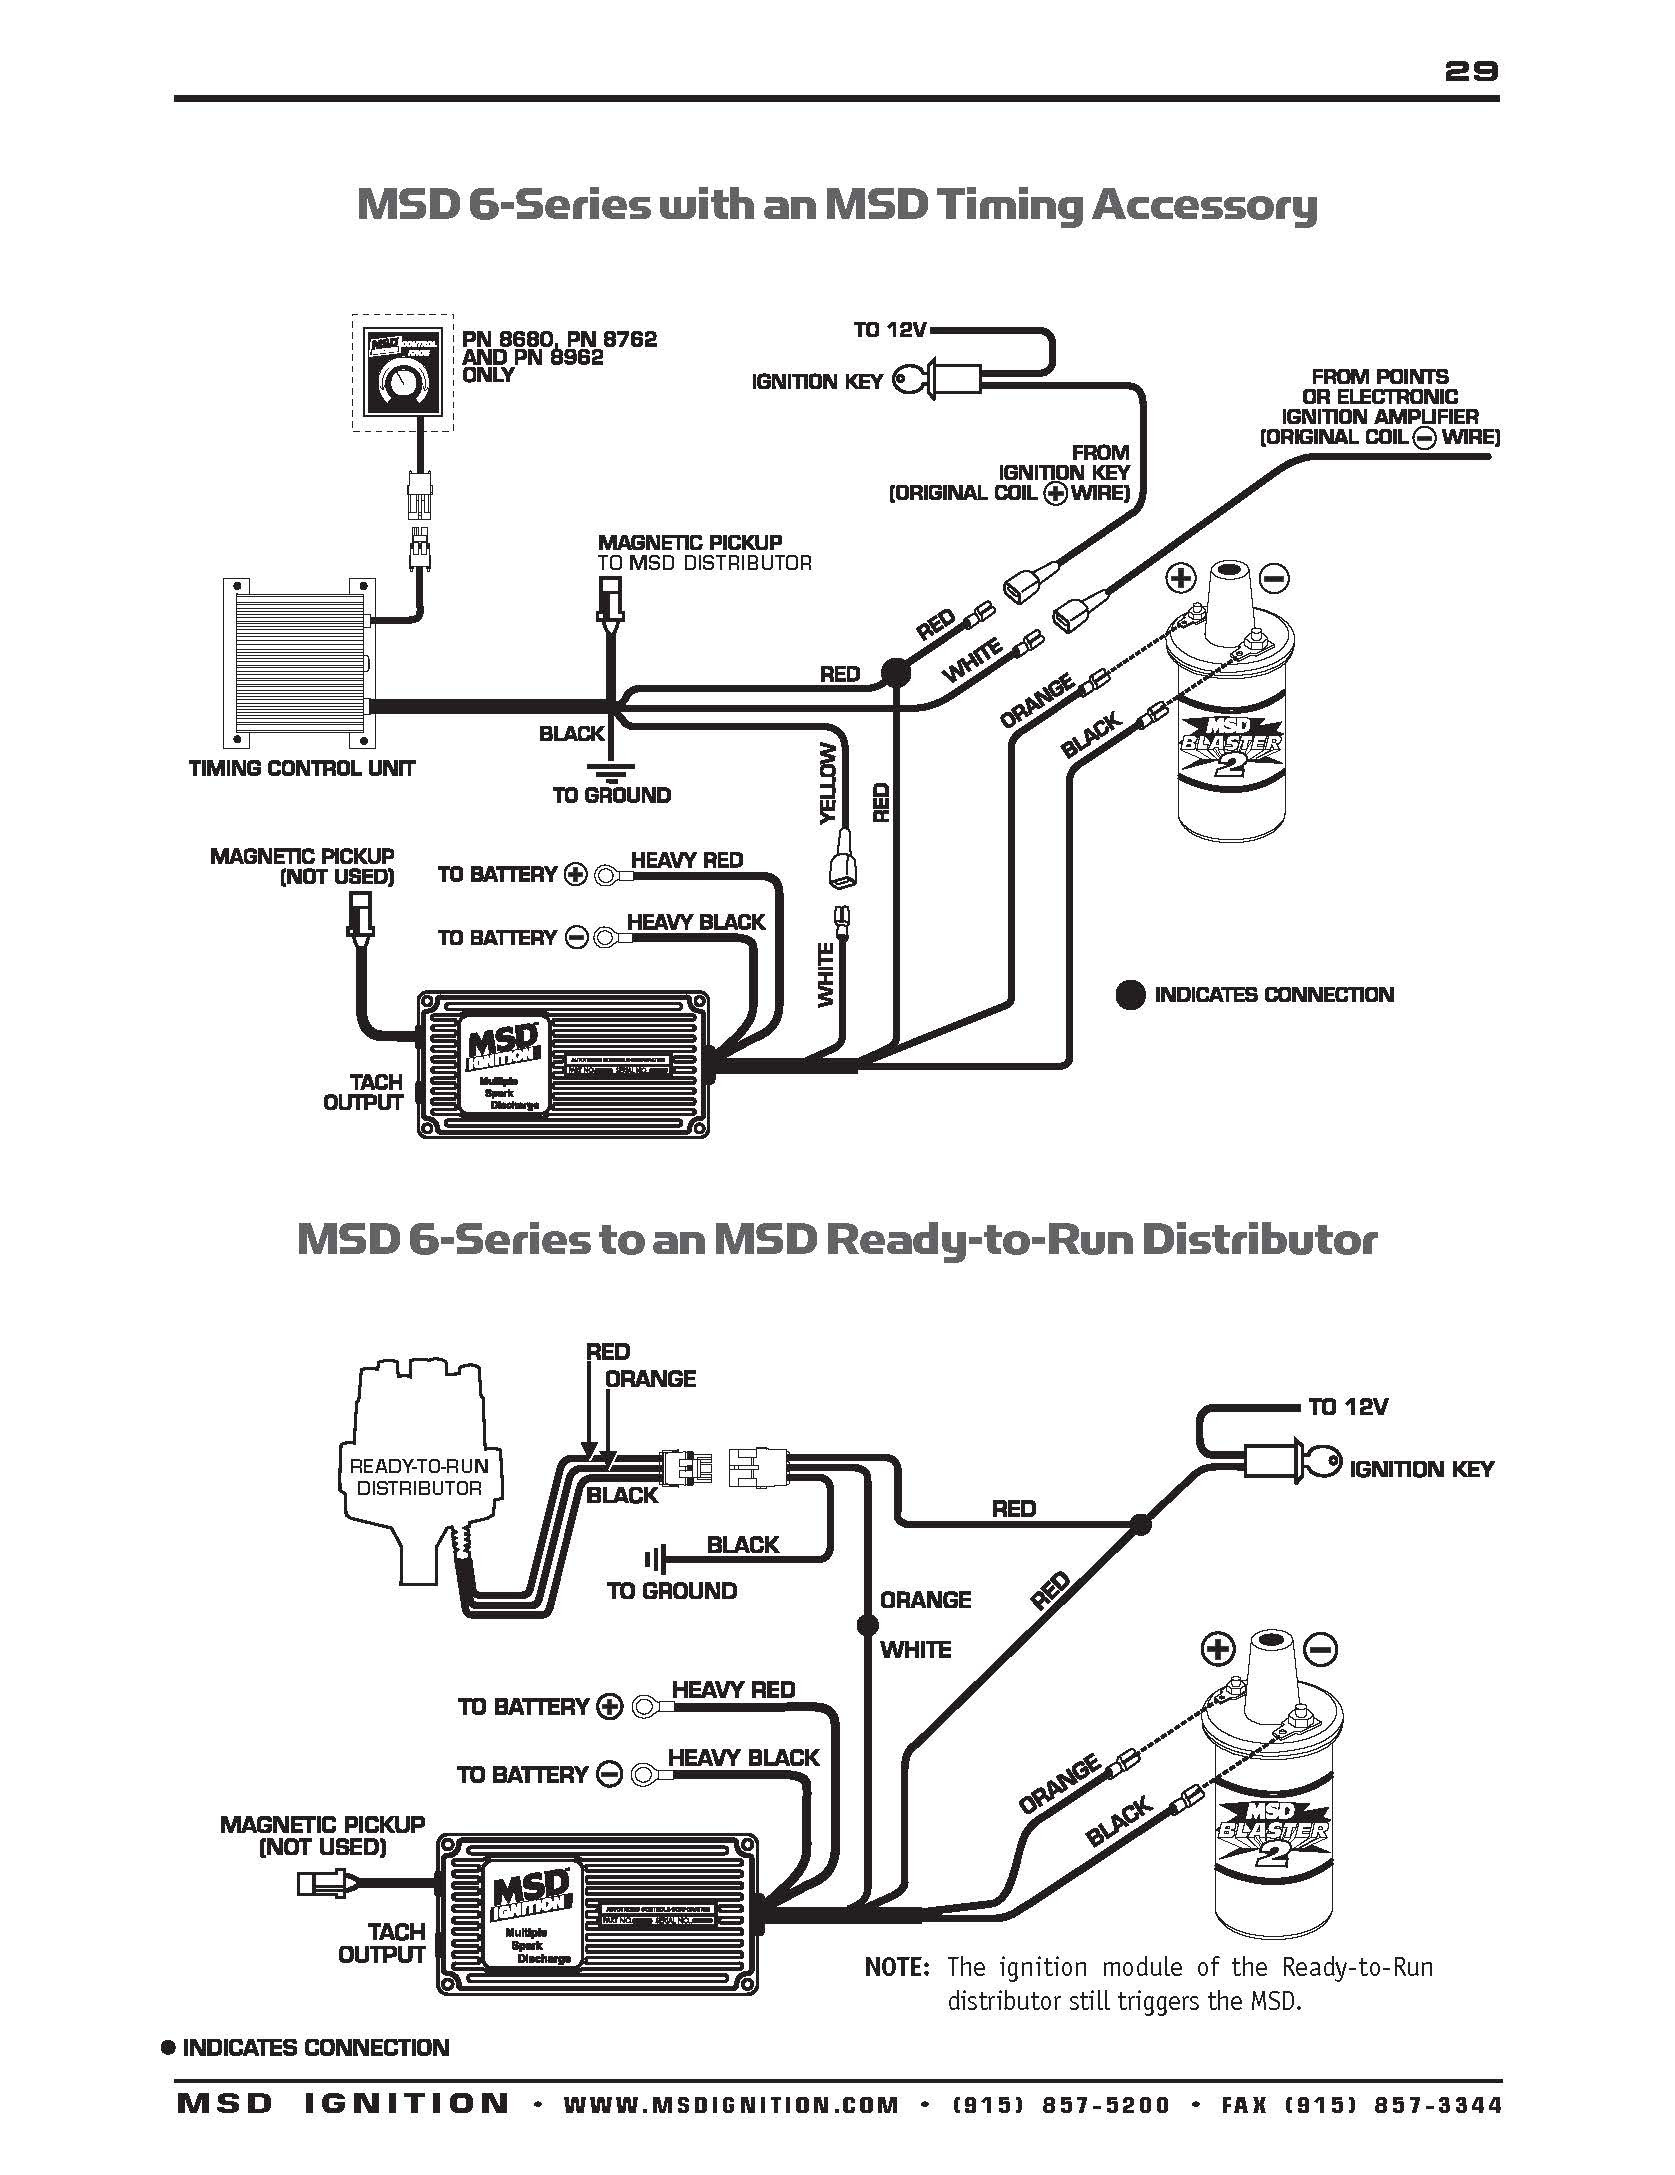 Msd Wiring Gm Wiring Diagram Grain Resource A Grain Resource A Led Illumina It